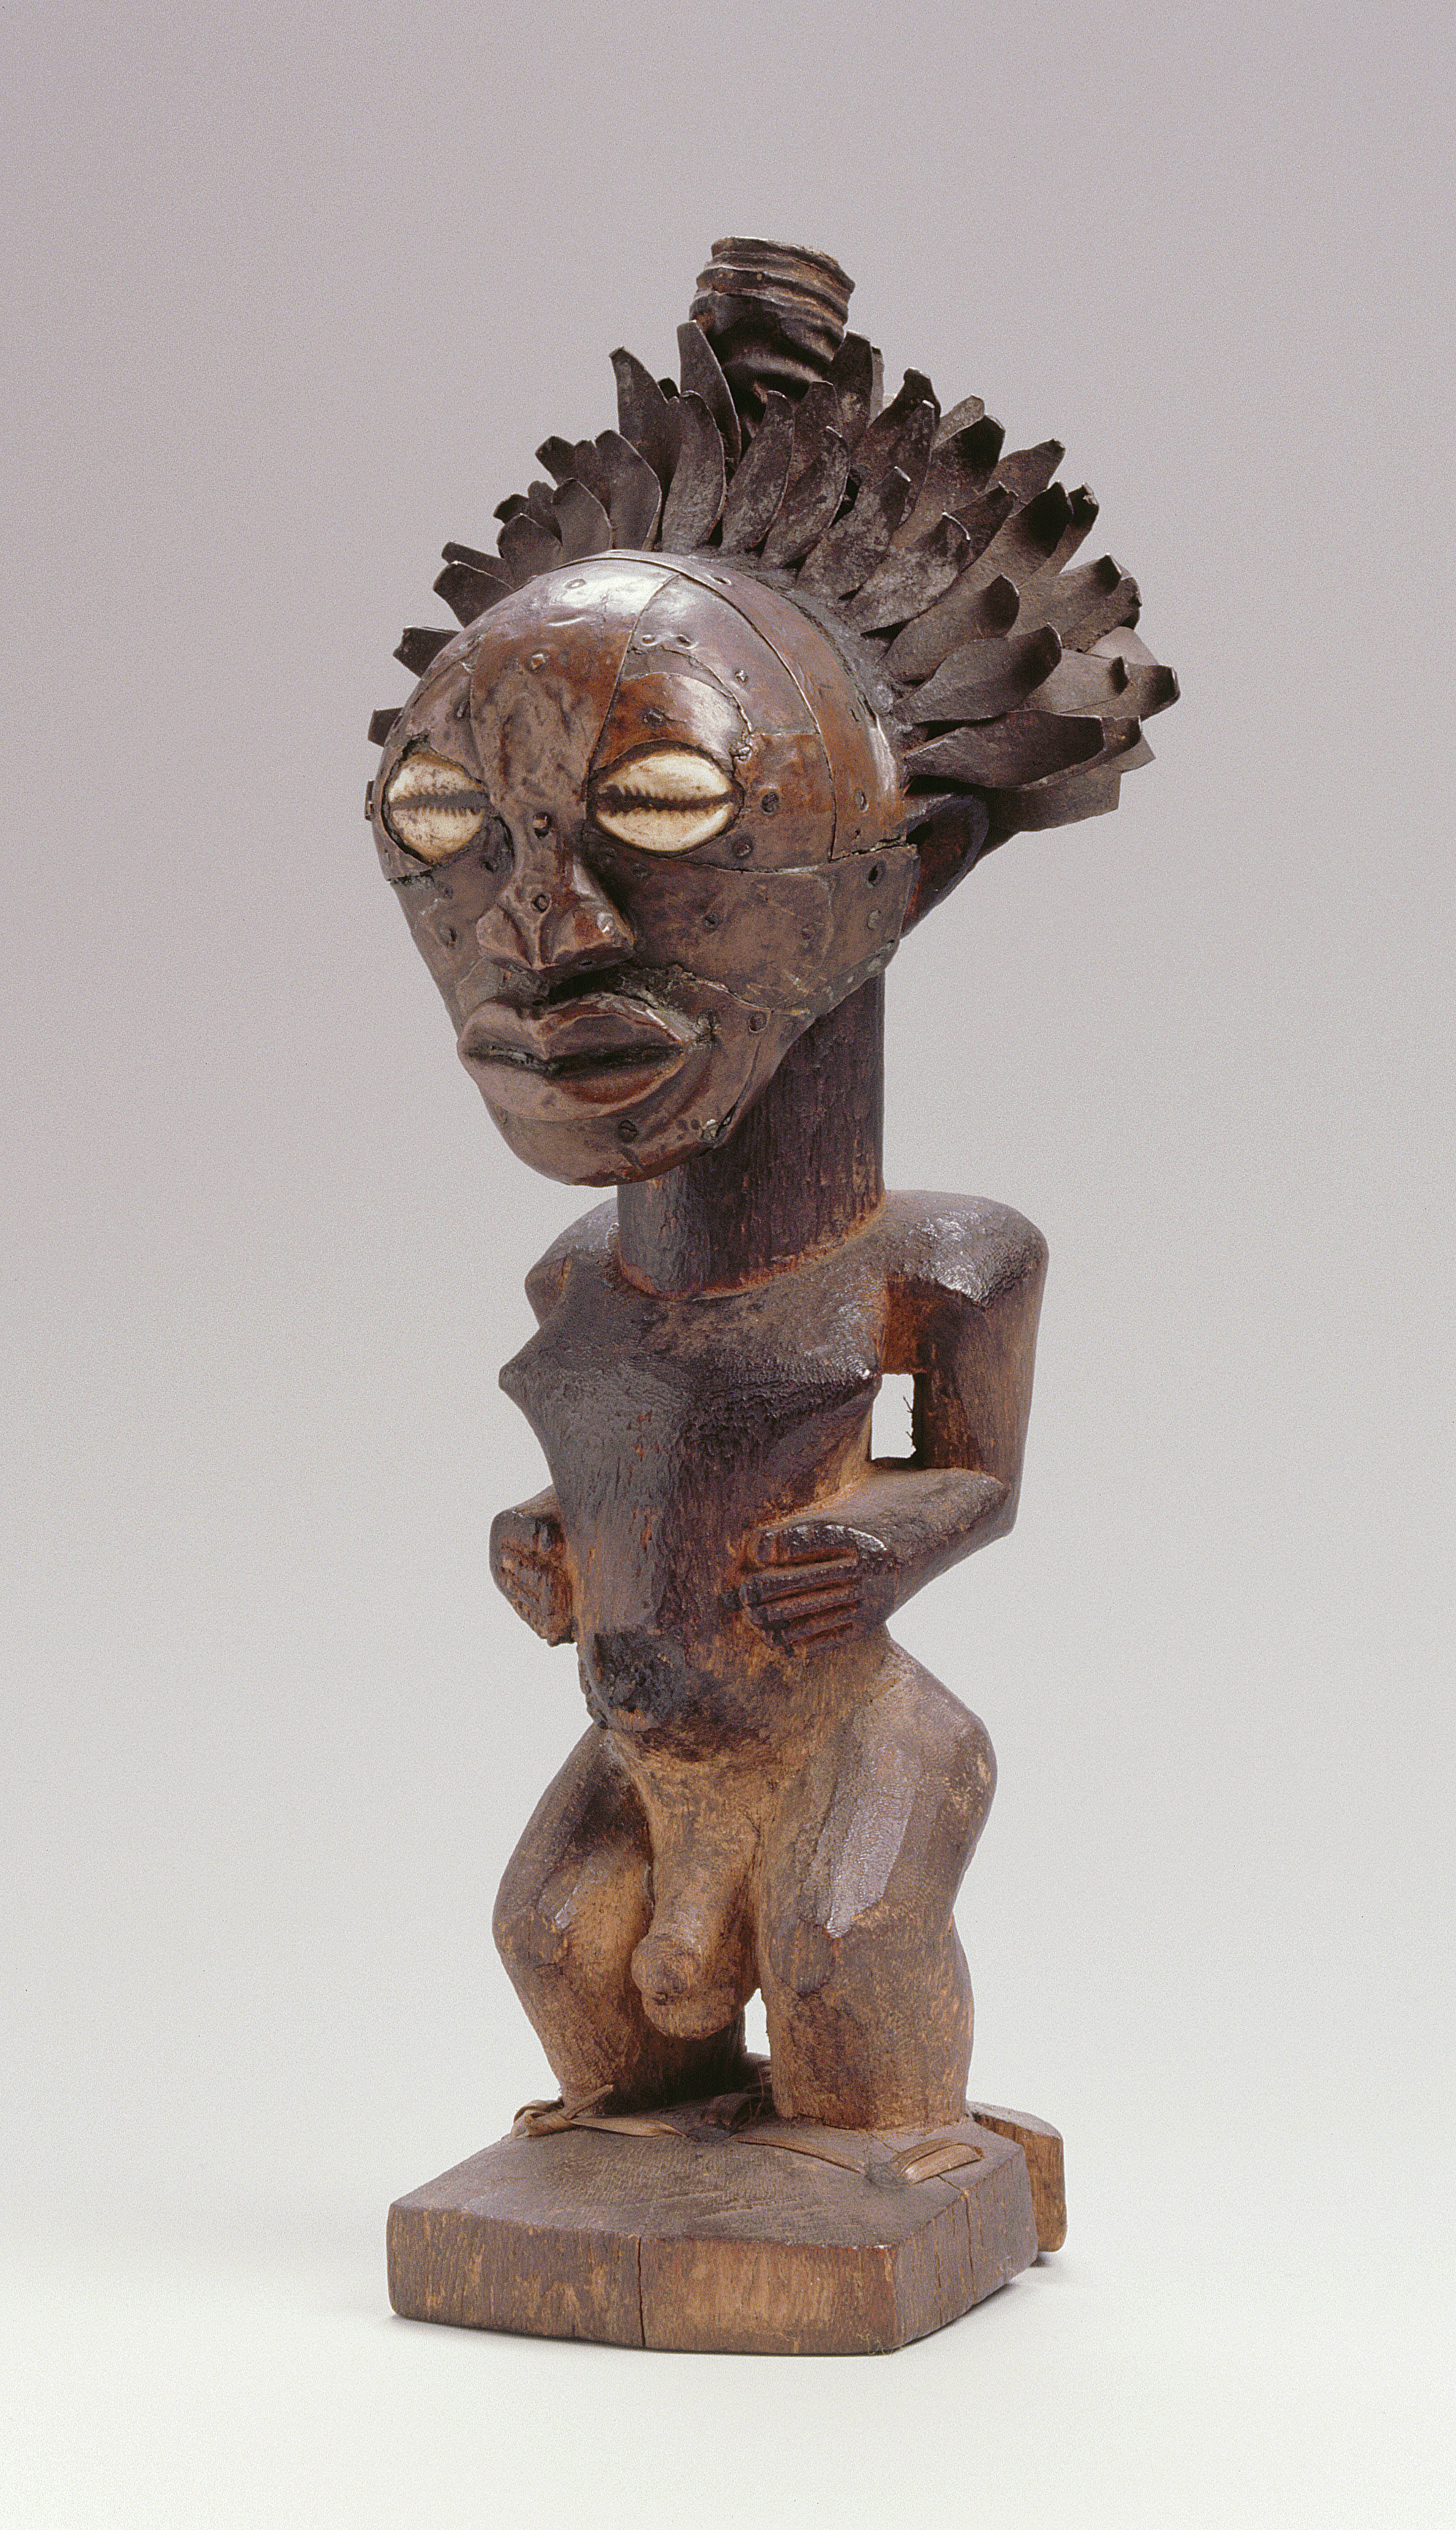 """Artist Unknown (Songye peoples, Democratic Republic of the Congo),Nkishi figure, mid to late 19th century, wood, forged iron, copper alloy, cowrie shell, horn,H: 28.5 cm, W: 12 cm.Collection of the MAS, Antwerp, Belgium (AE.0720), Gift of Louis Franck,Antwerp, 1920.Image © MAS 